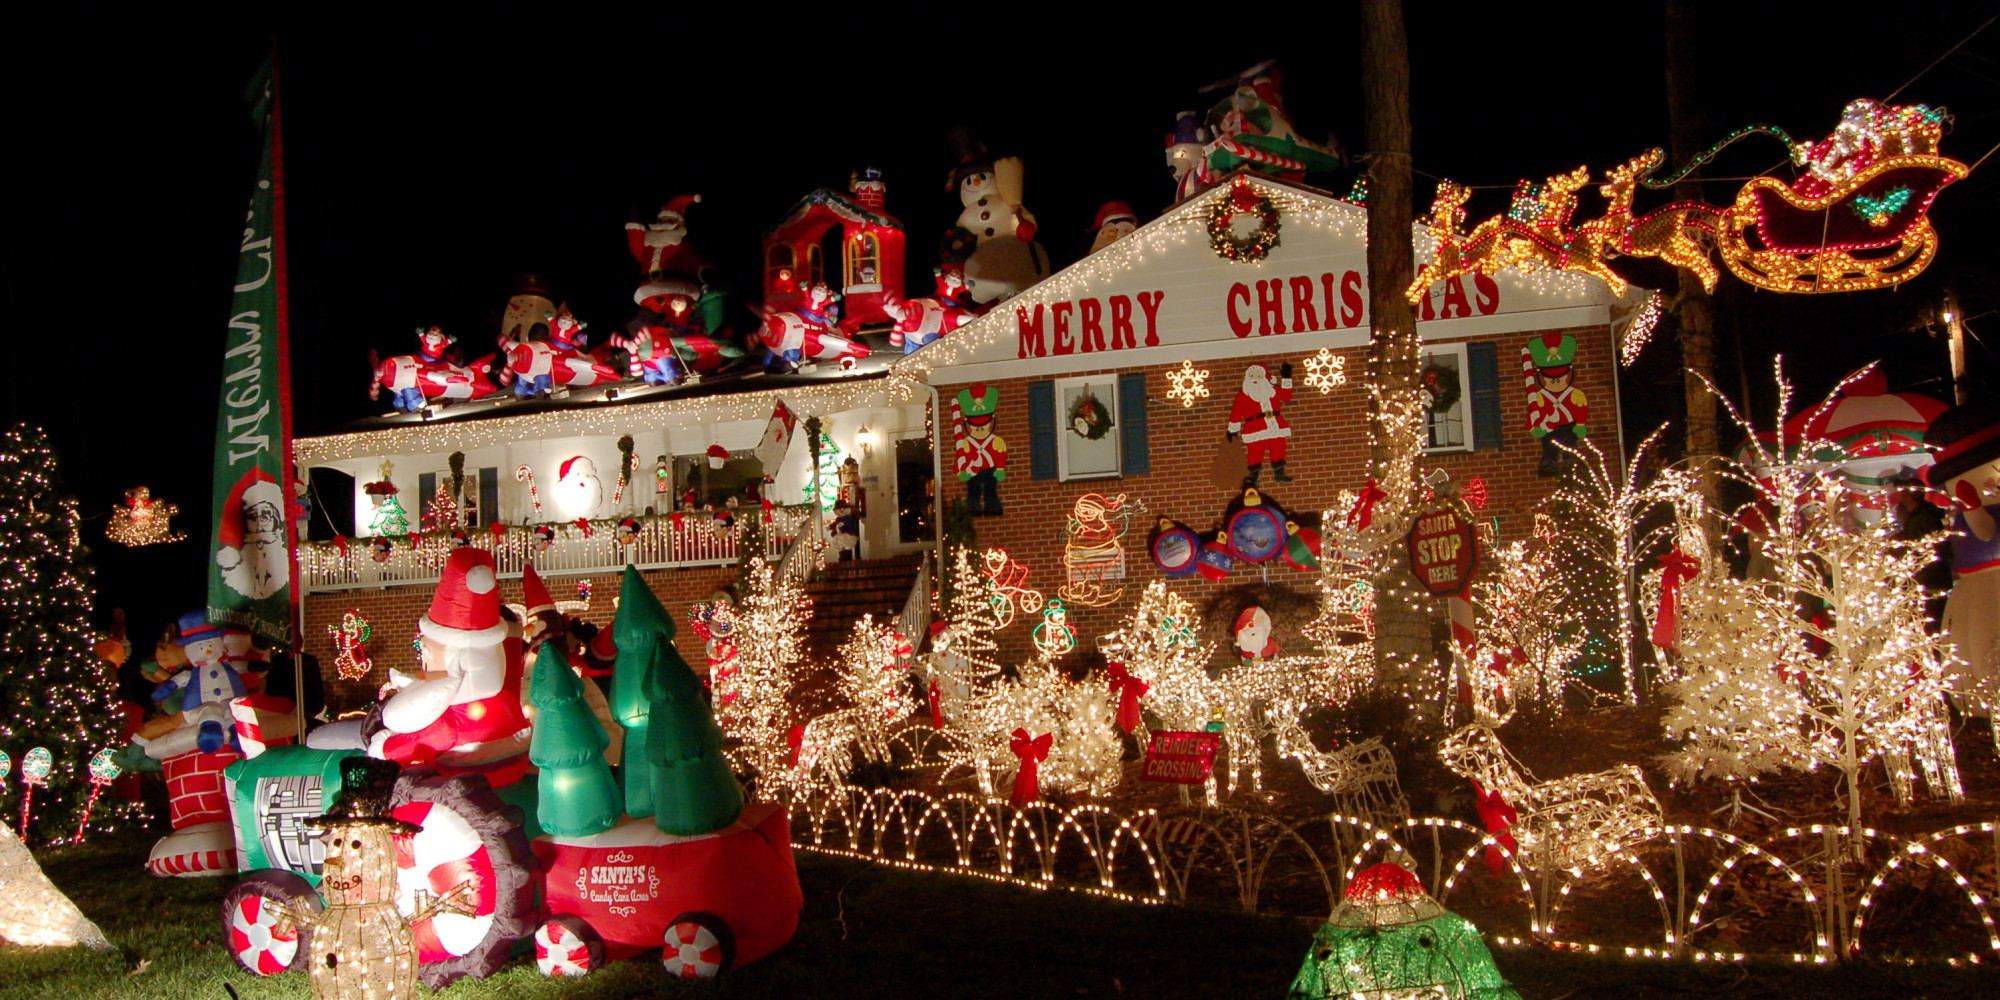 Outdoor christmas decorations 2014 - Outdoor Christmas Decorations 2014